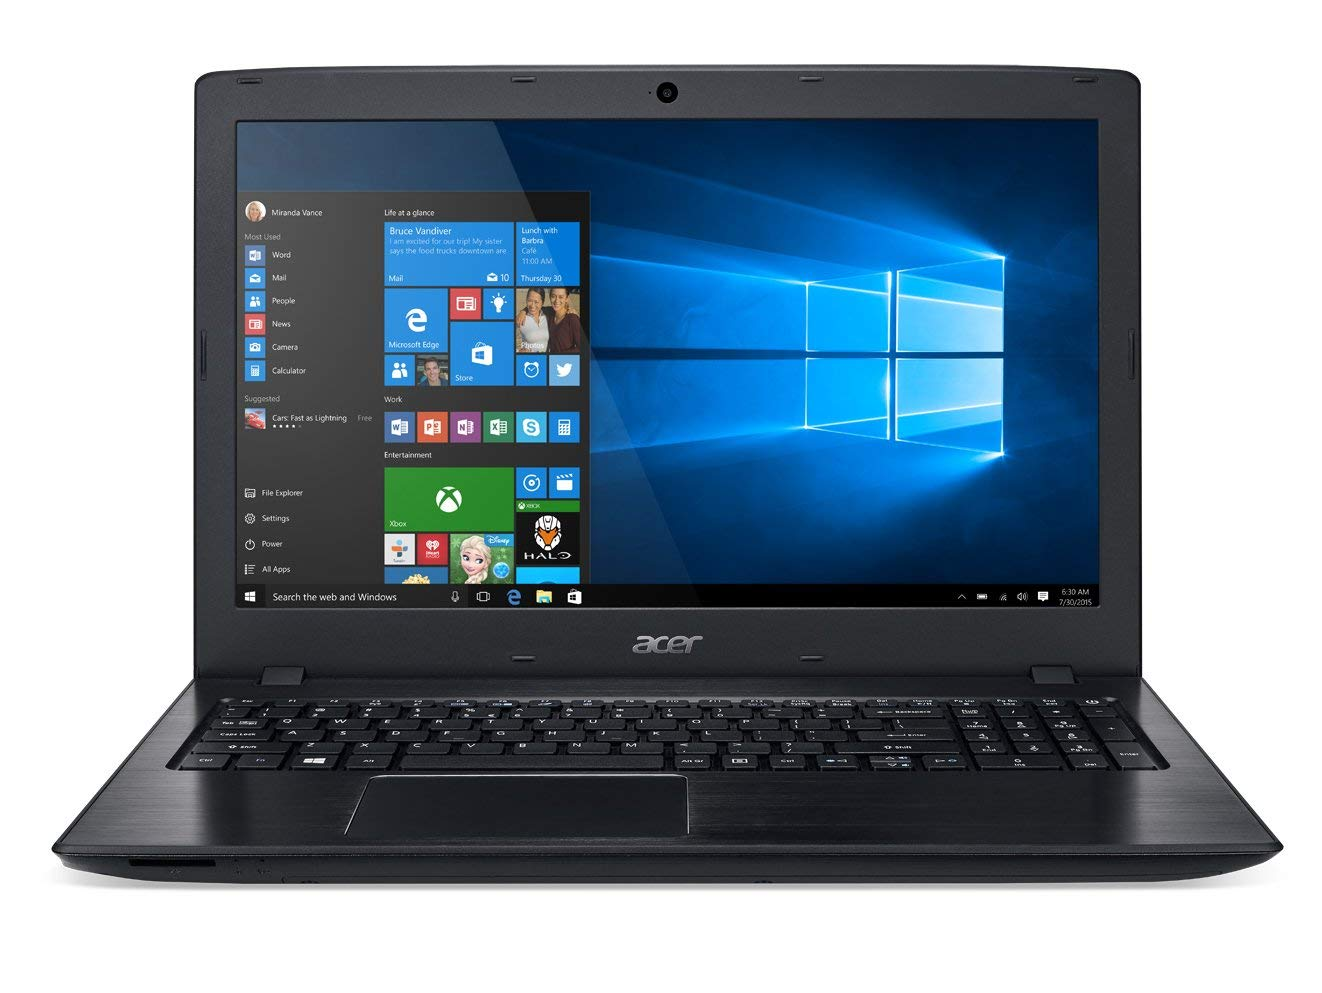 Acer Aspire E15 - Laptops with Long Battery Life